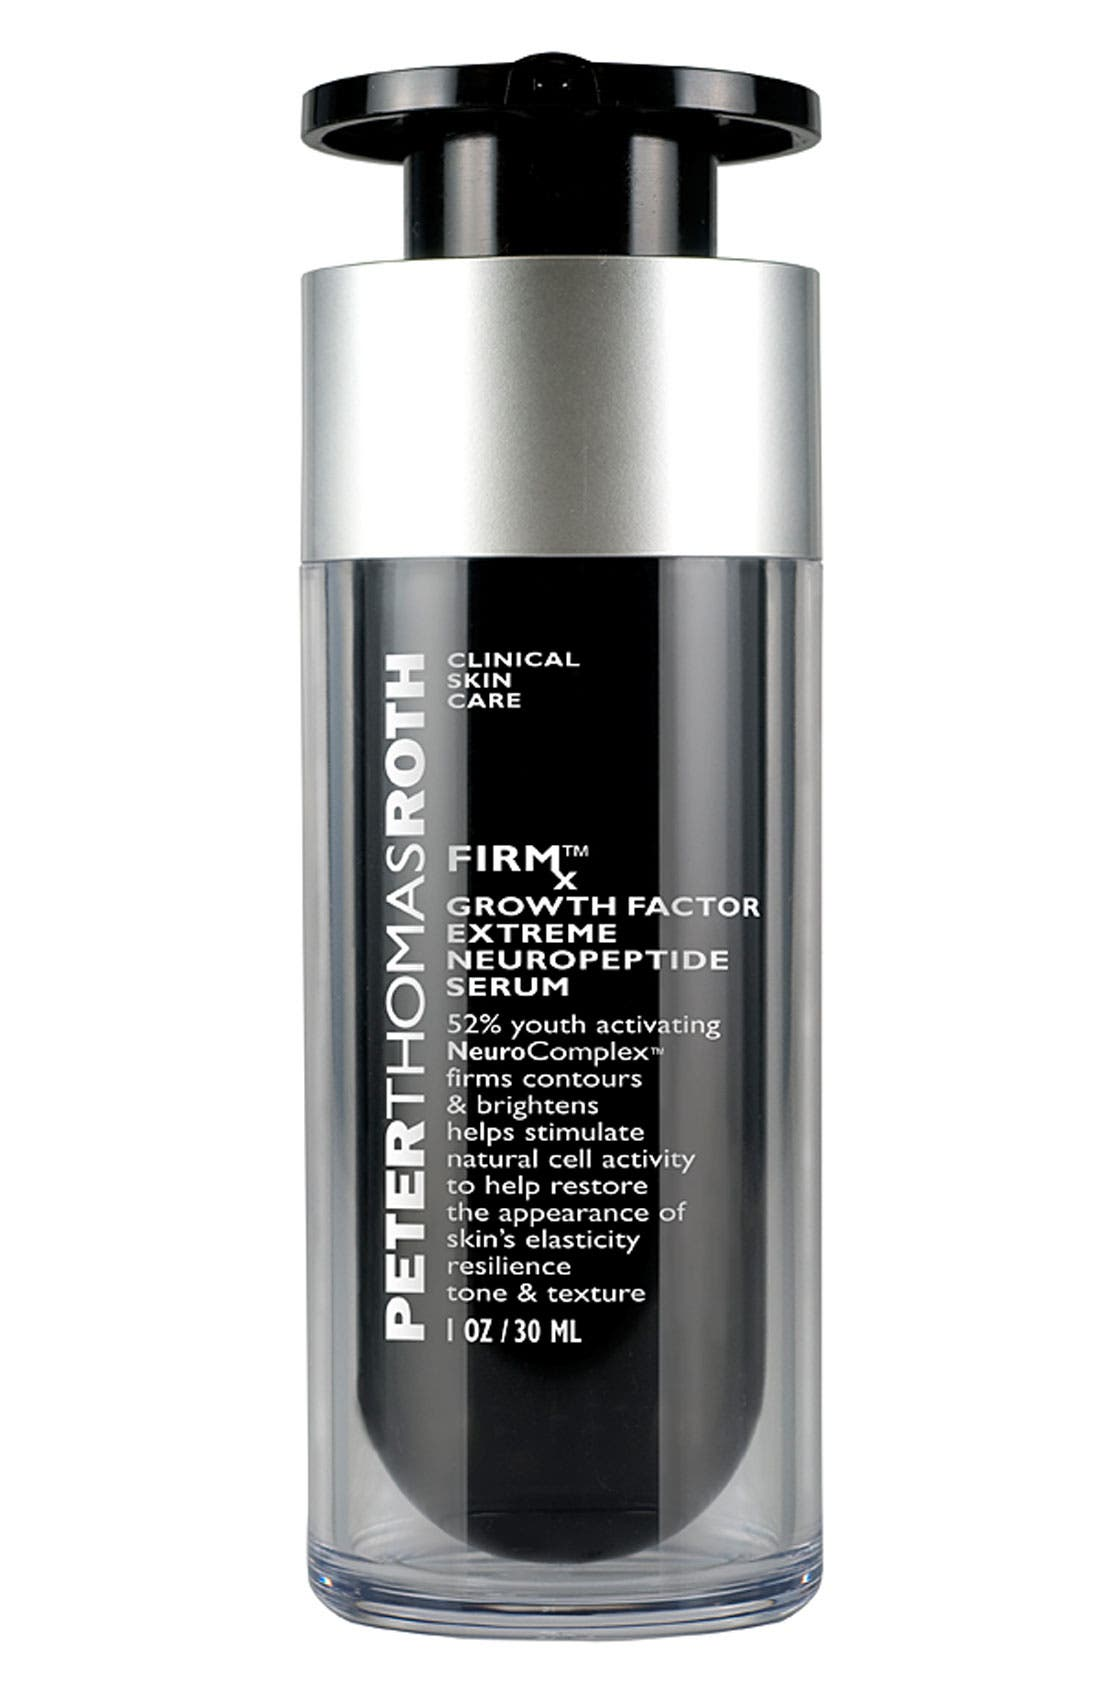 Peter Thomas Roth 'FIRMx Growth Factor Extreme' Neuropeptide Serum